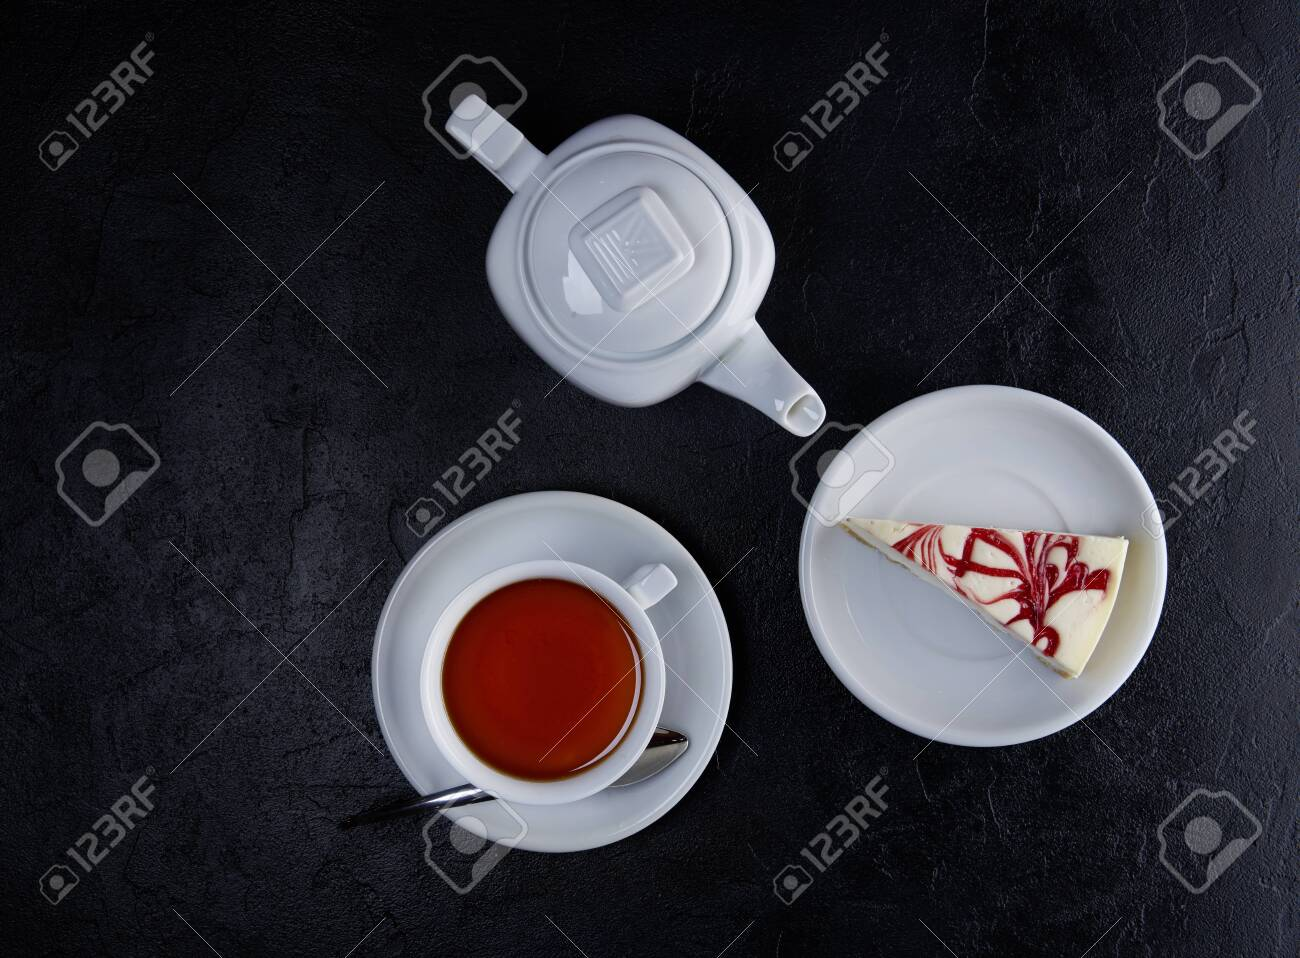 Pieces of cheesecake, cup of tea and teapot on black background. Top view, Flat lay - 131904960